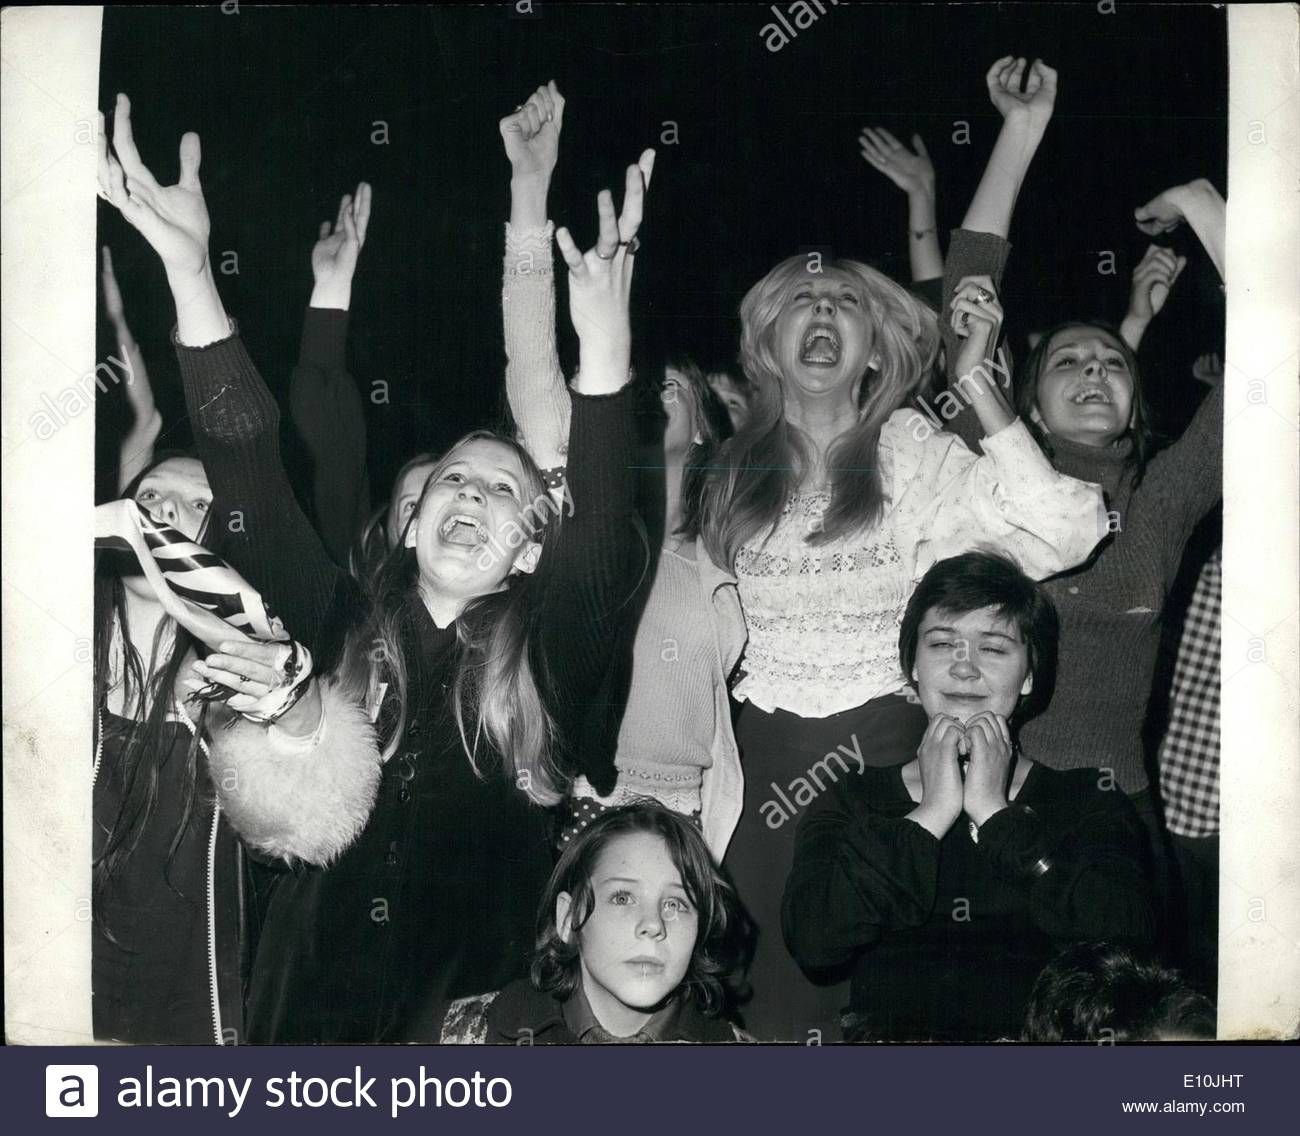 Download This Stock Image: Mar. 03, 1973